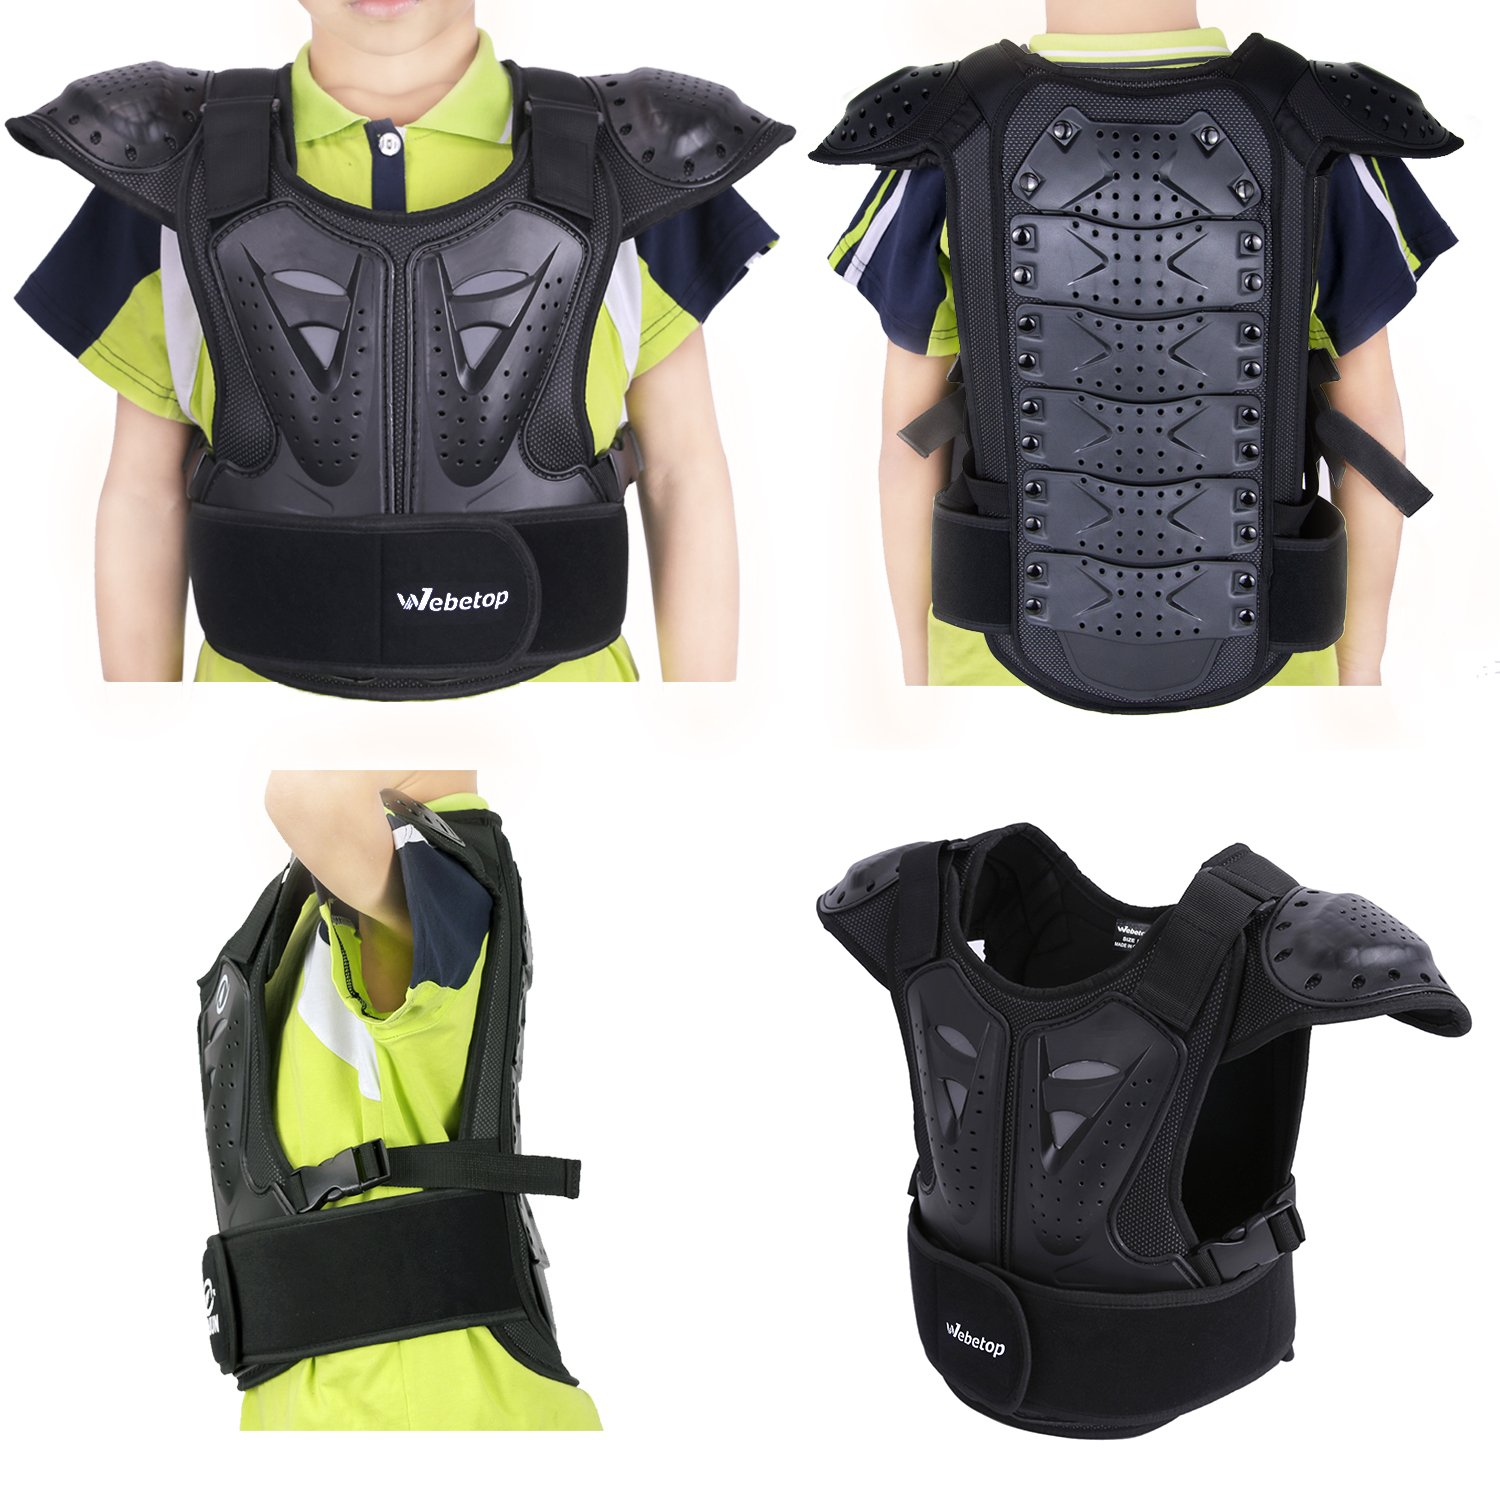 Webetop Kids Dirt Bike Body Chest Spine Protector Vest Protective for Dirtbike L by Webetop (Image #3)